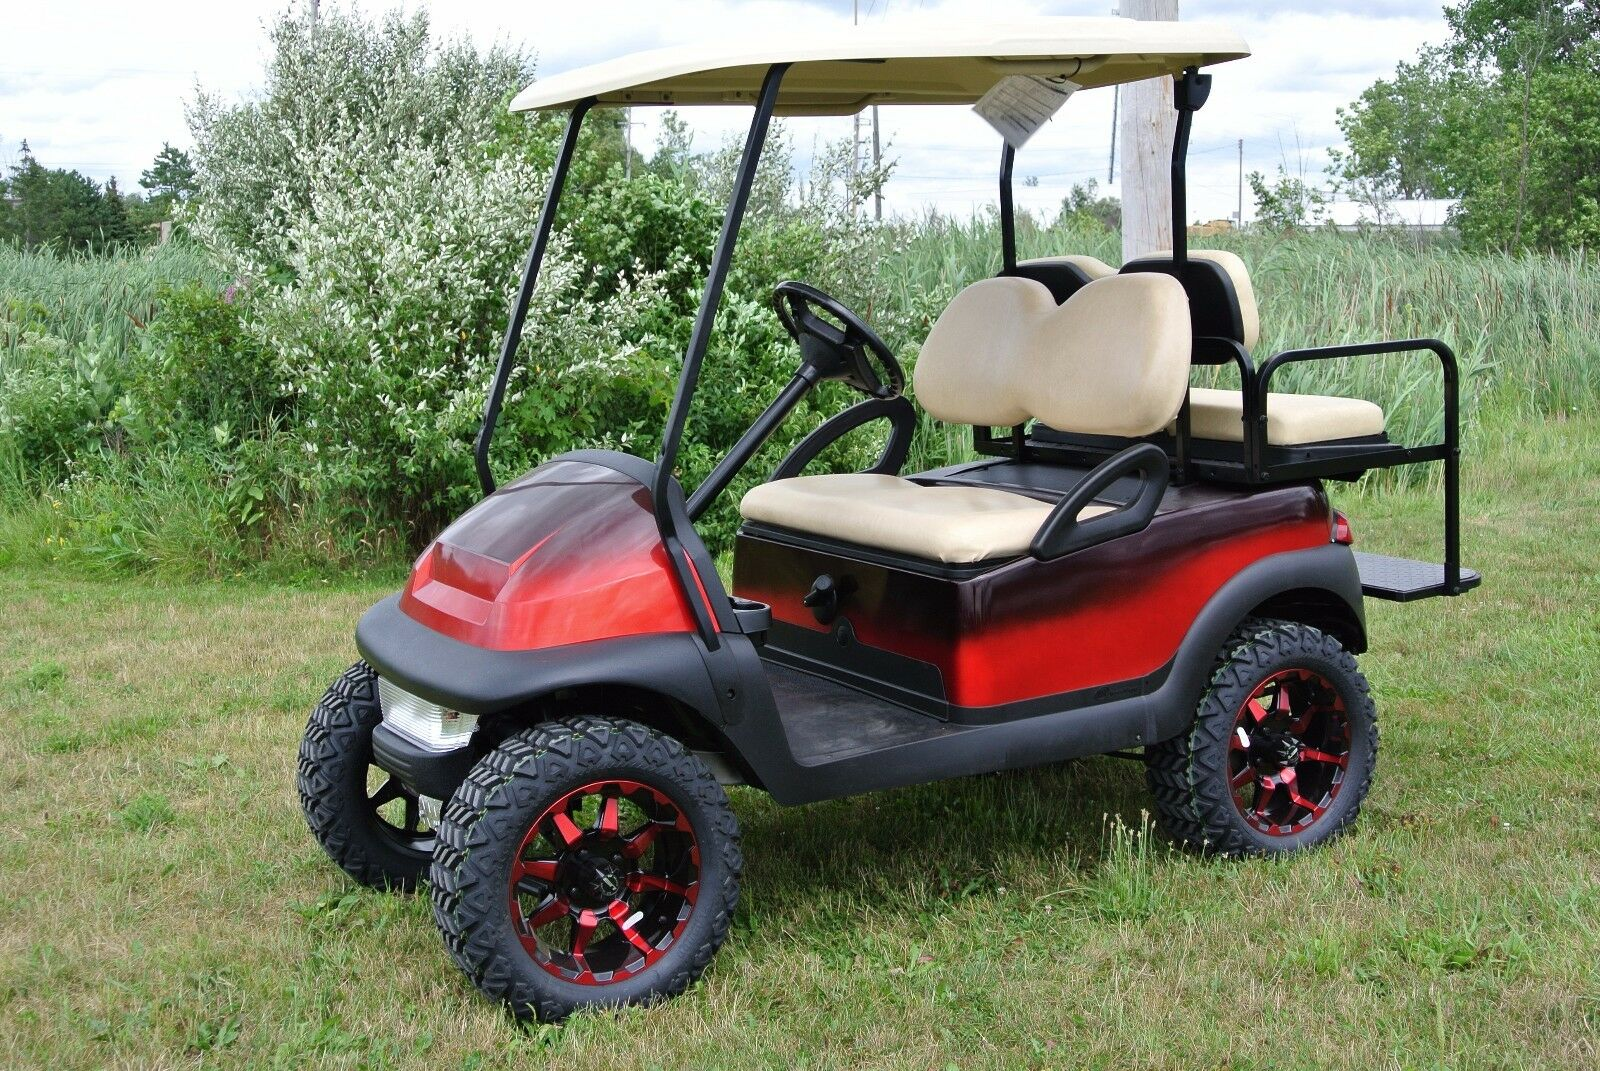 Custom Paint Harley Davidson Golf Cart Html on